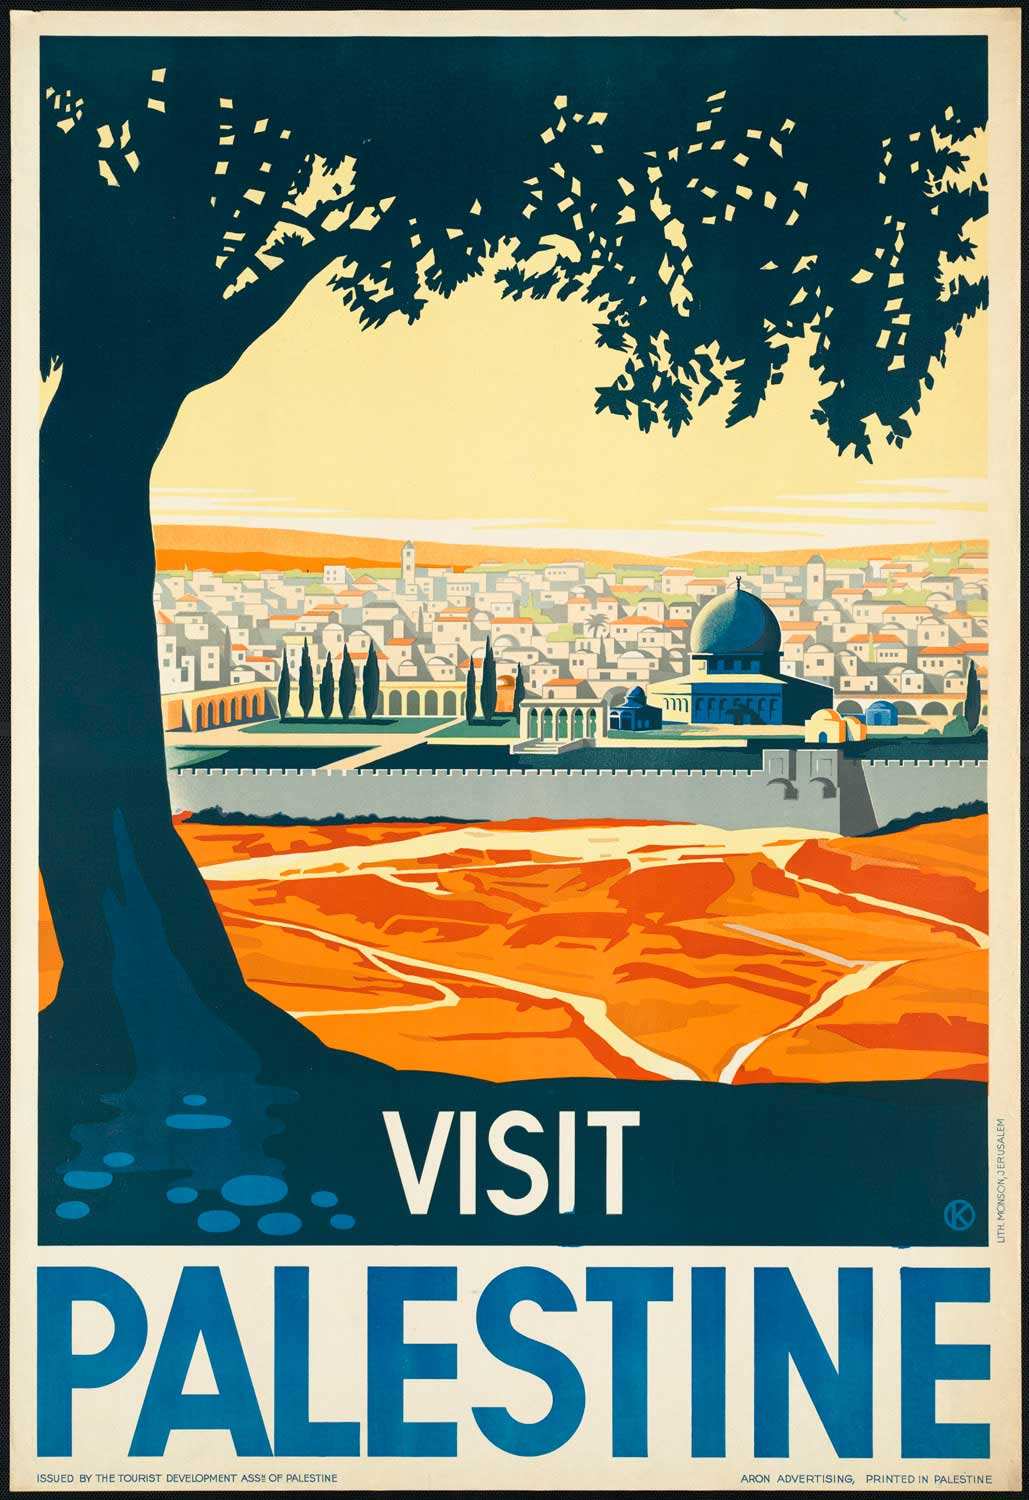 Visit Palestine, obviously pre-1948